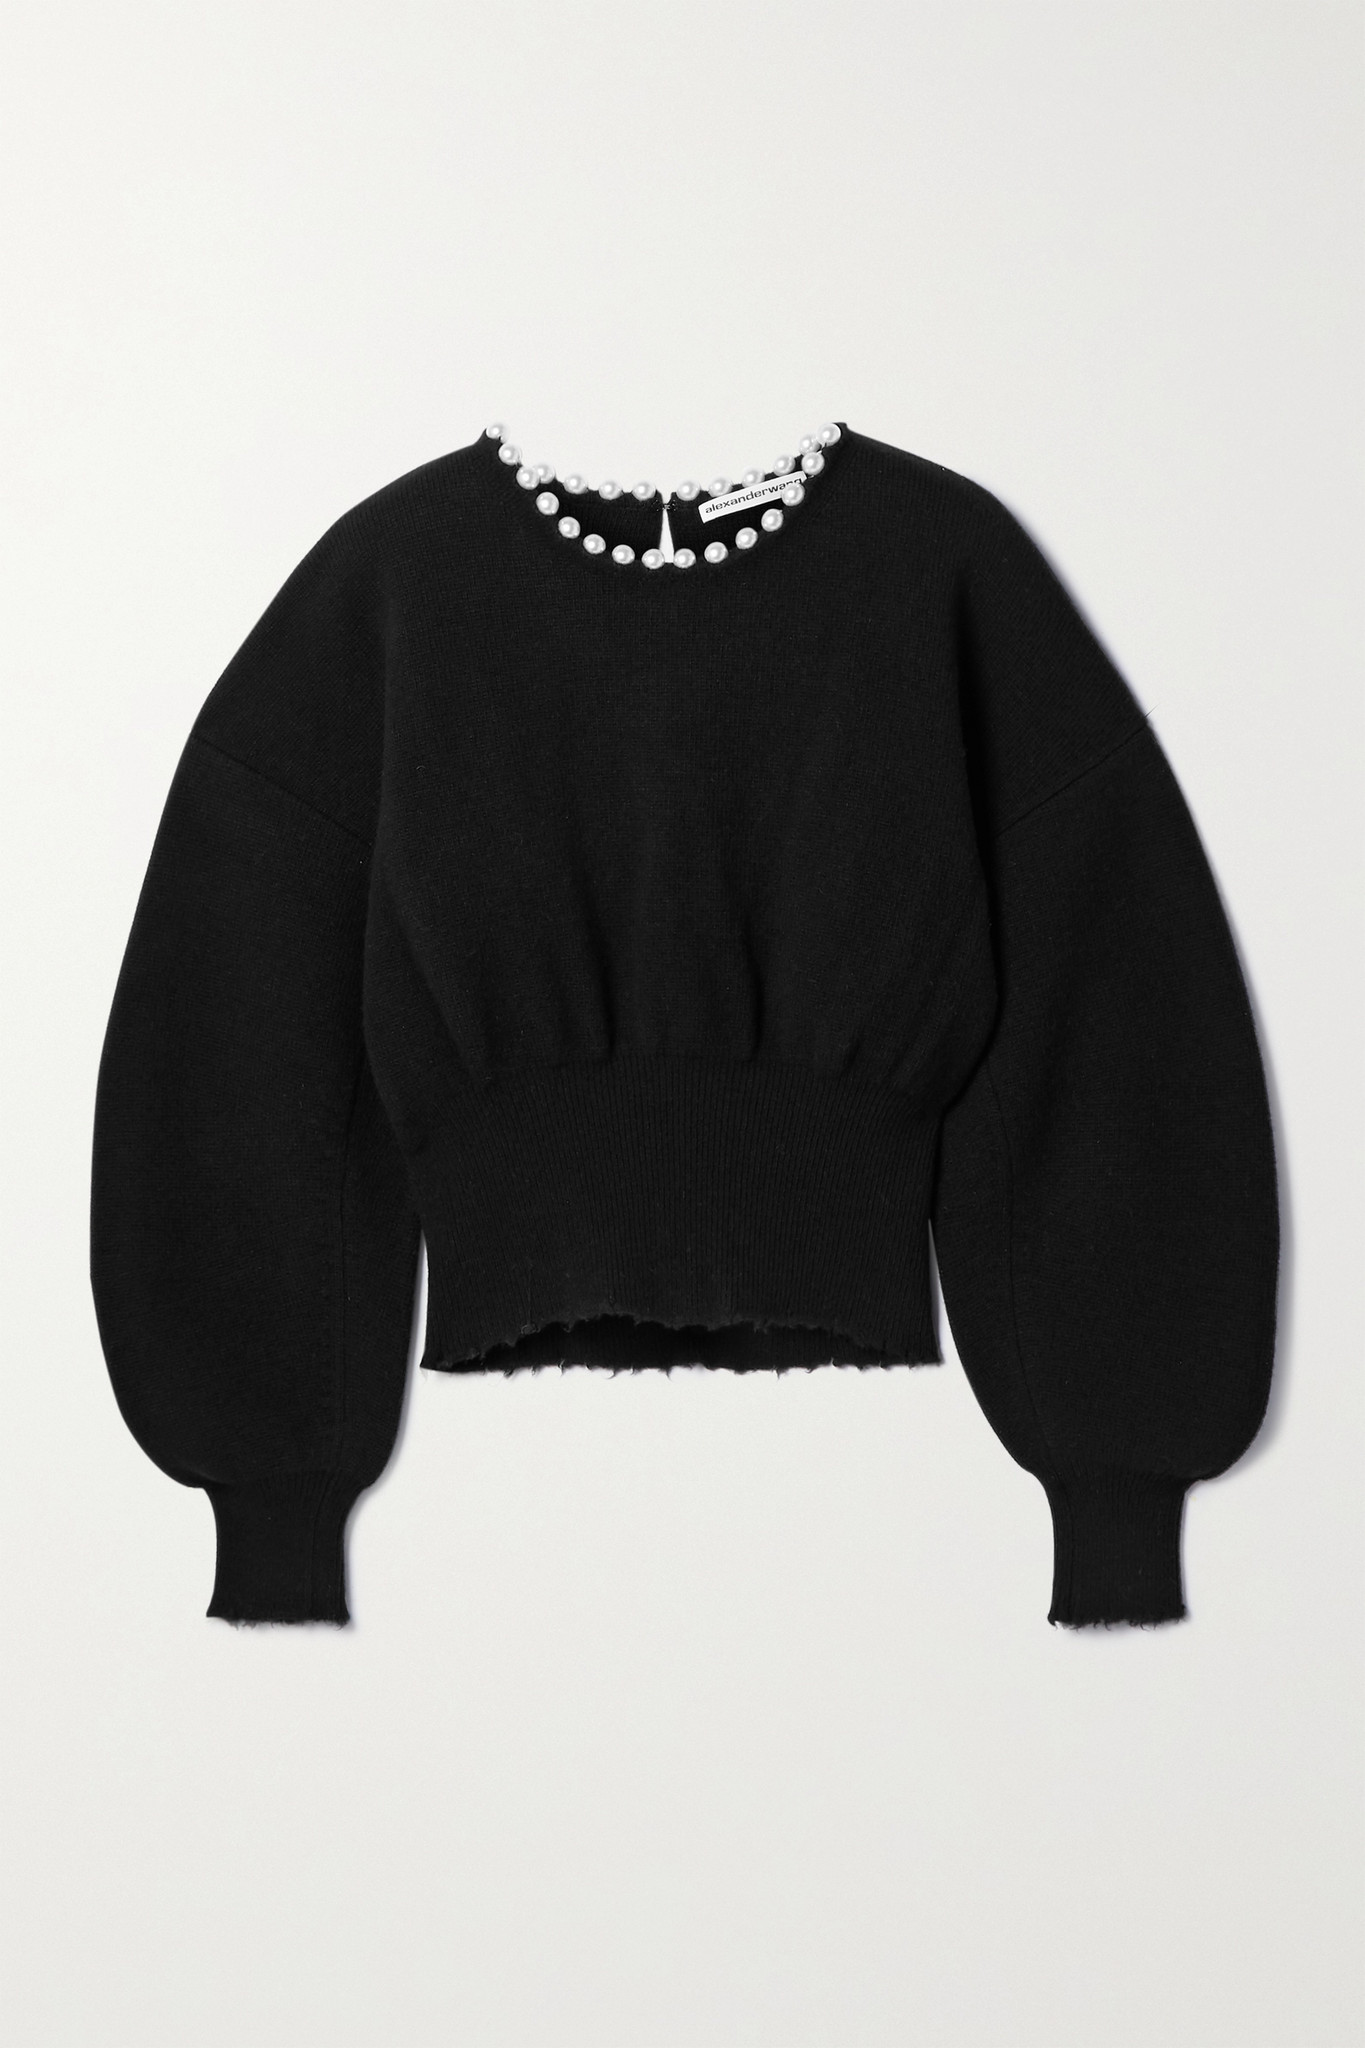 ALEXANDER WANG - Faux Pearl-embellished Distressed Wool-blend Sweater - Black - x small